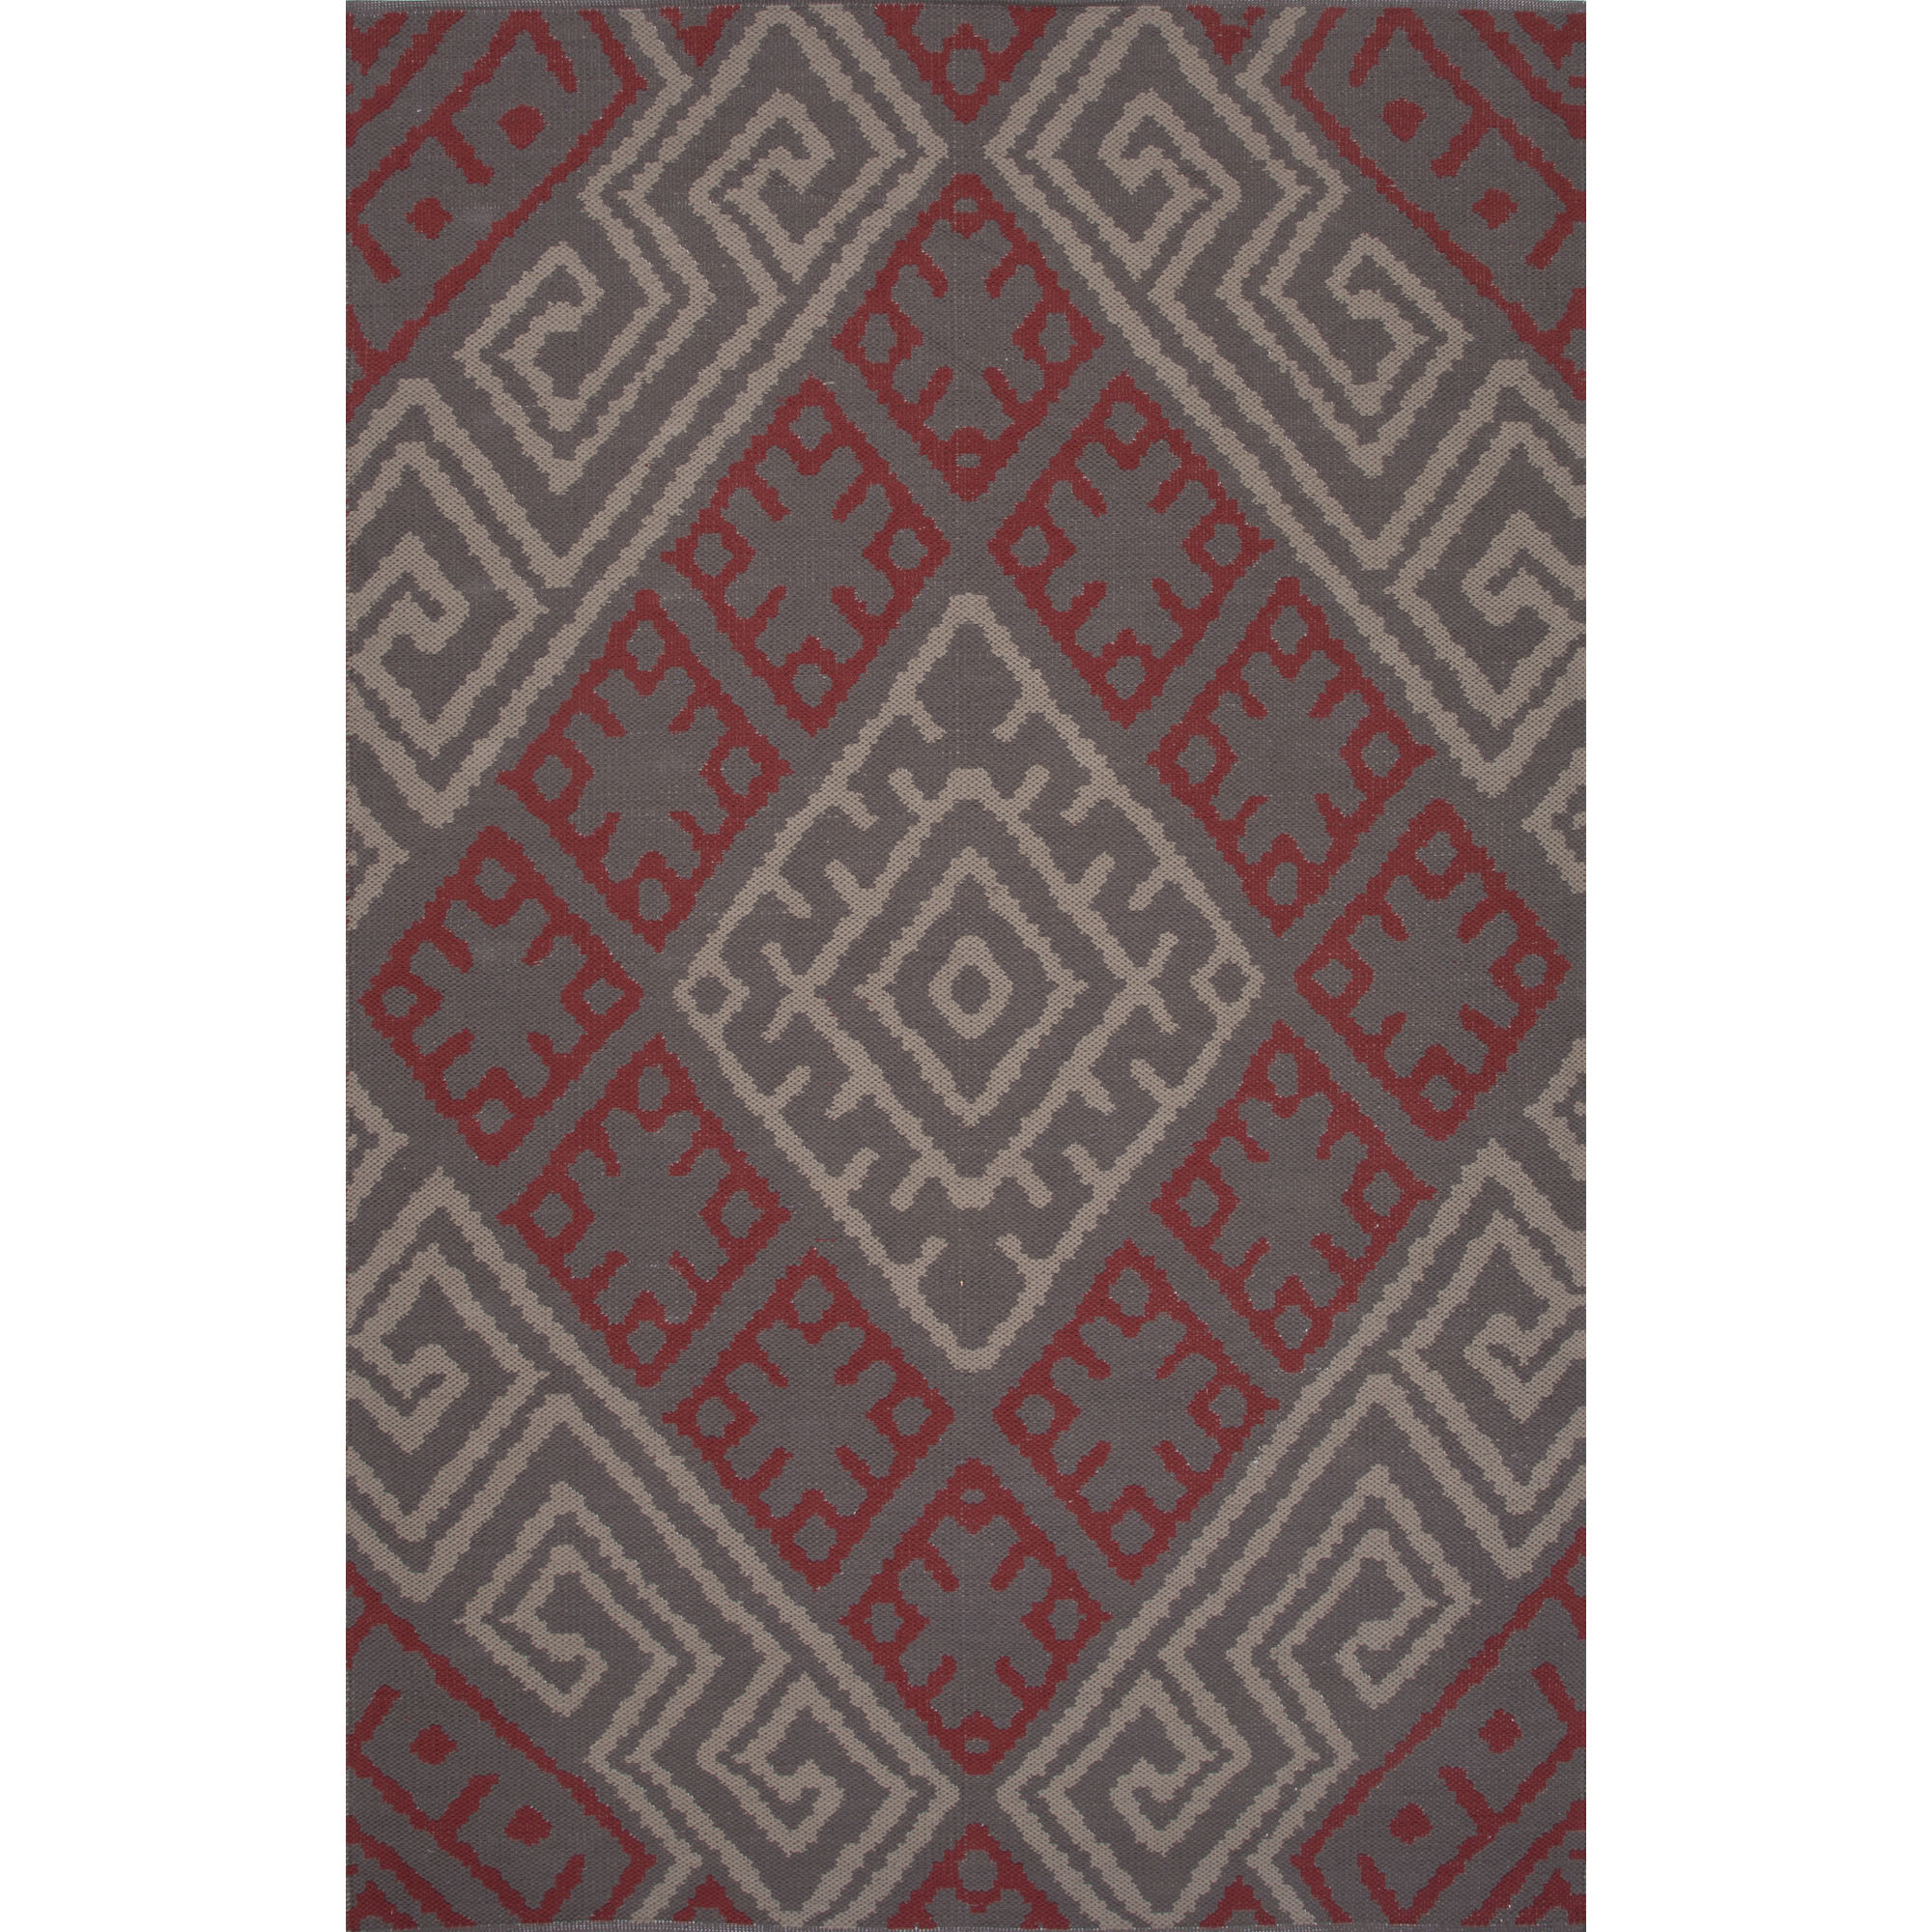 JAIPUR Rugs Traditions Modern Cotton Flat Weave 5 x 8 Rug - Item Number: RUG120669